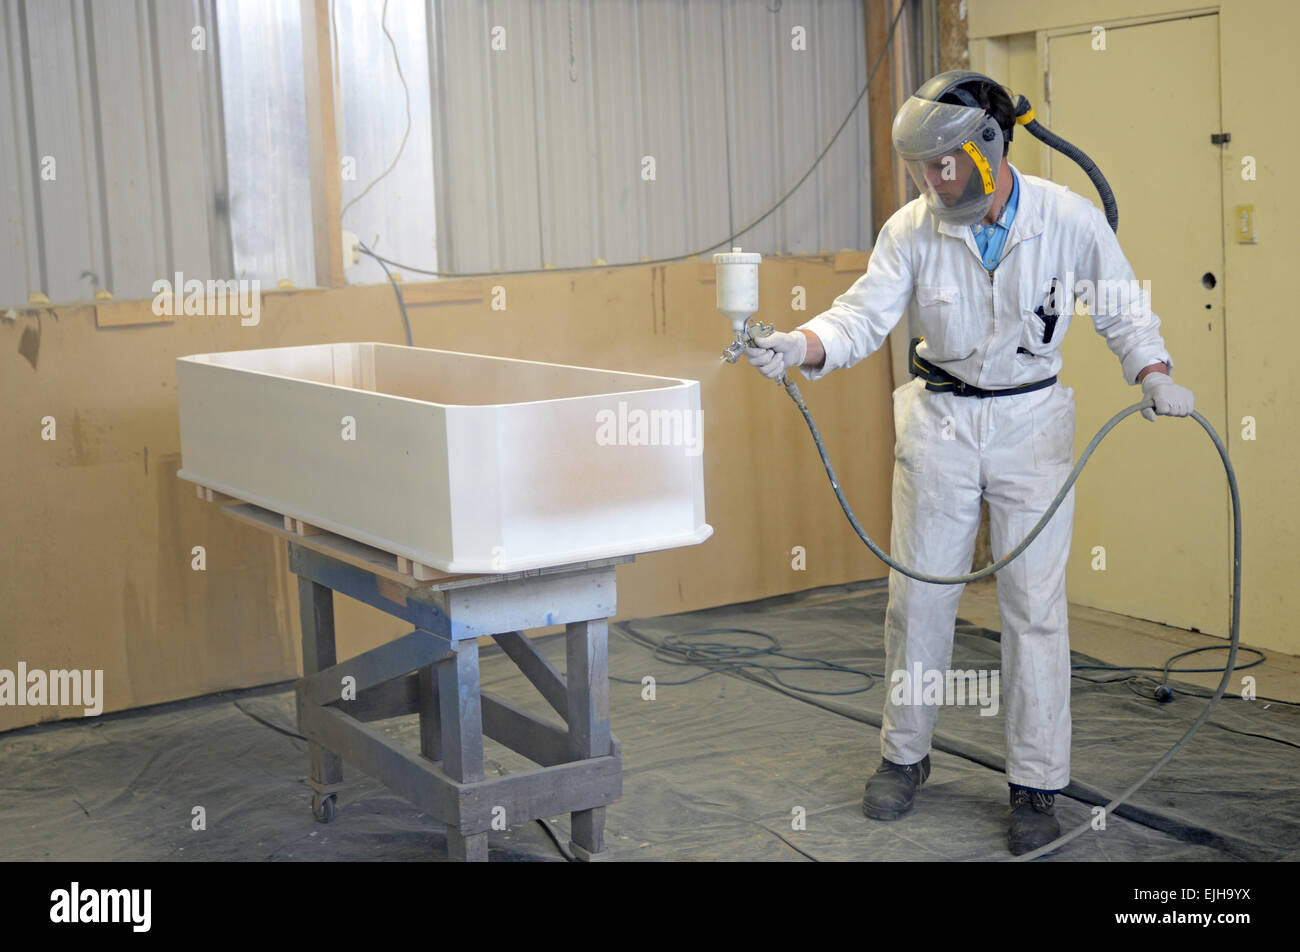 A tradesman spray paints a coffin in a spray booth - Stock Image